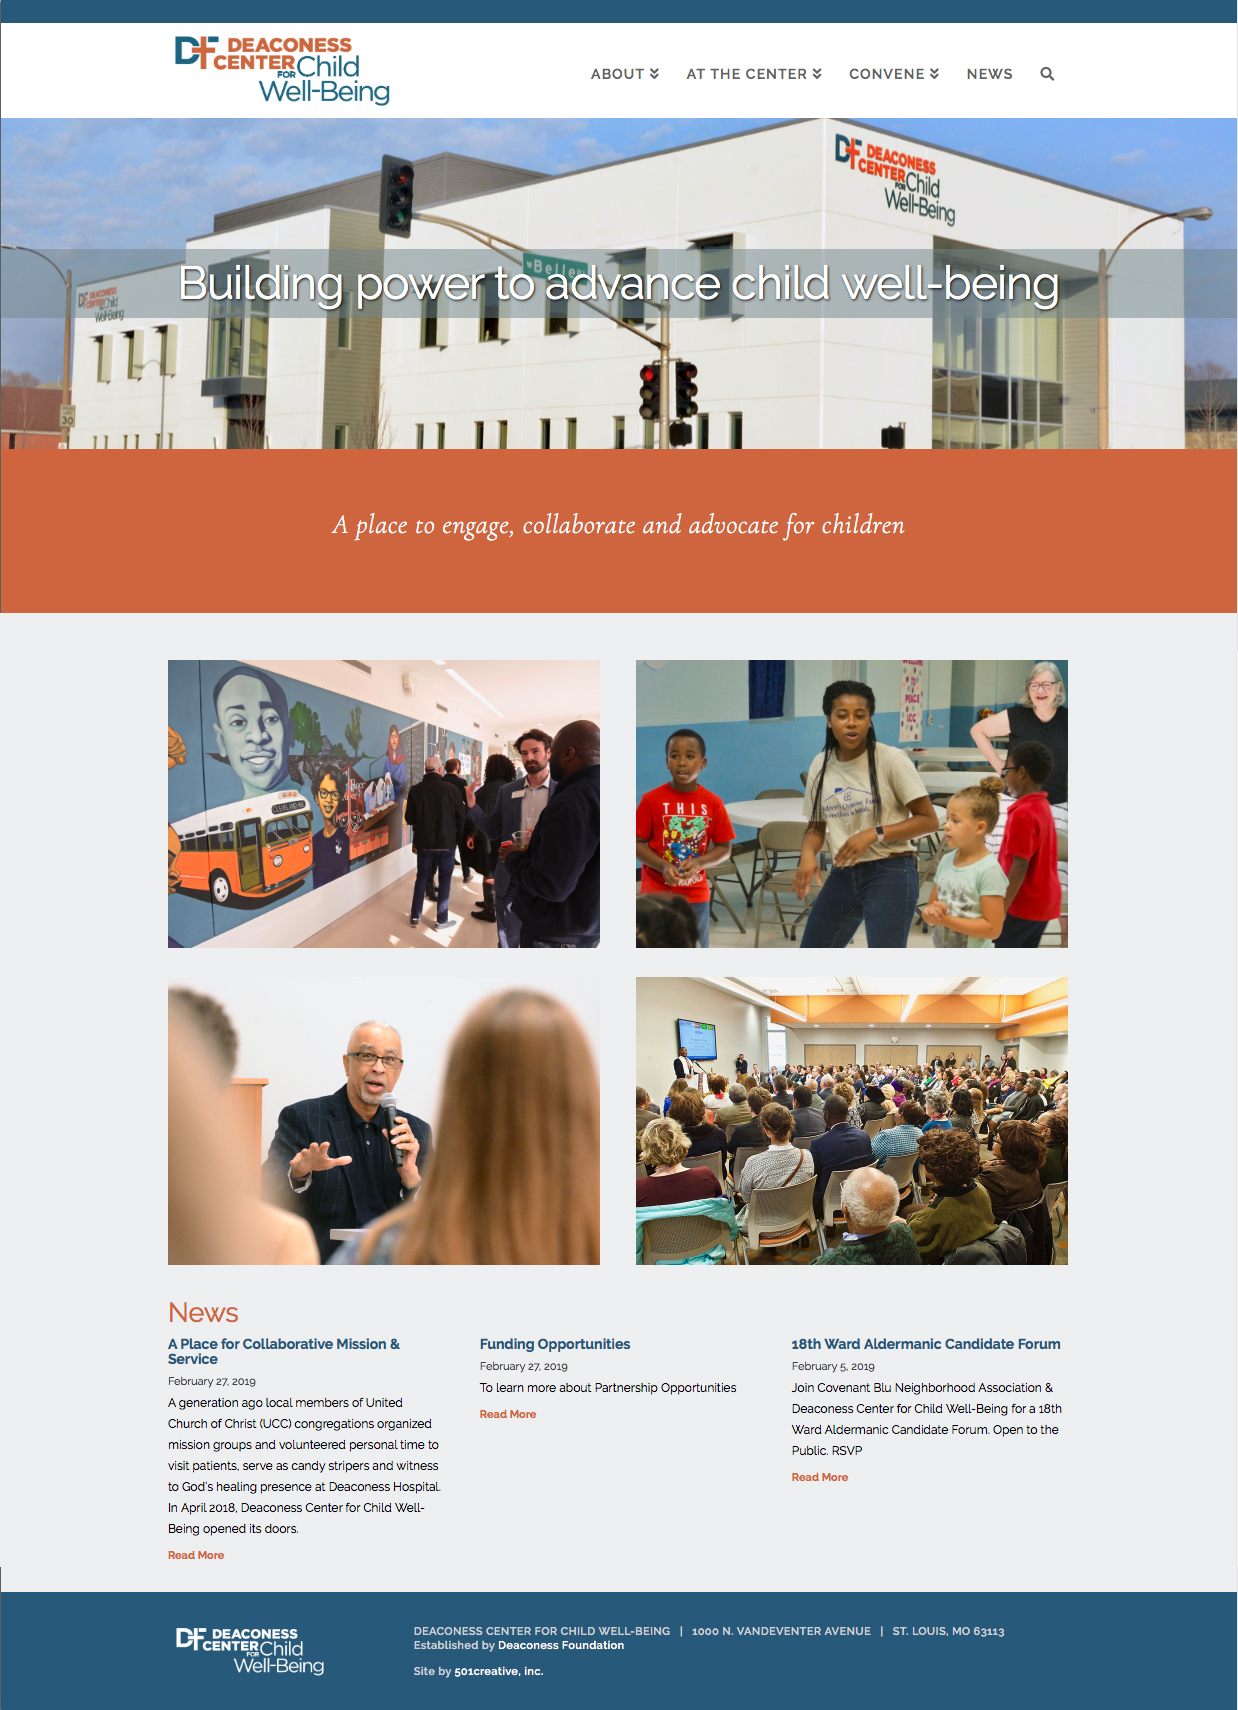 home page of the Deaconess Center for Child Well-Being website